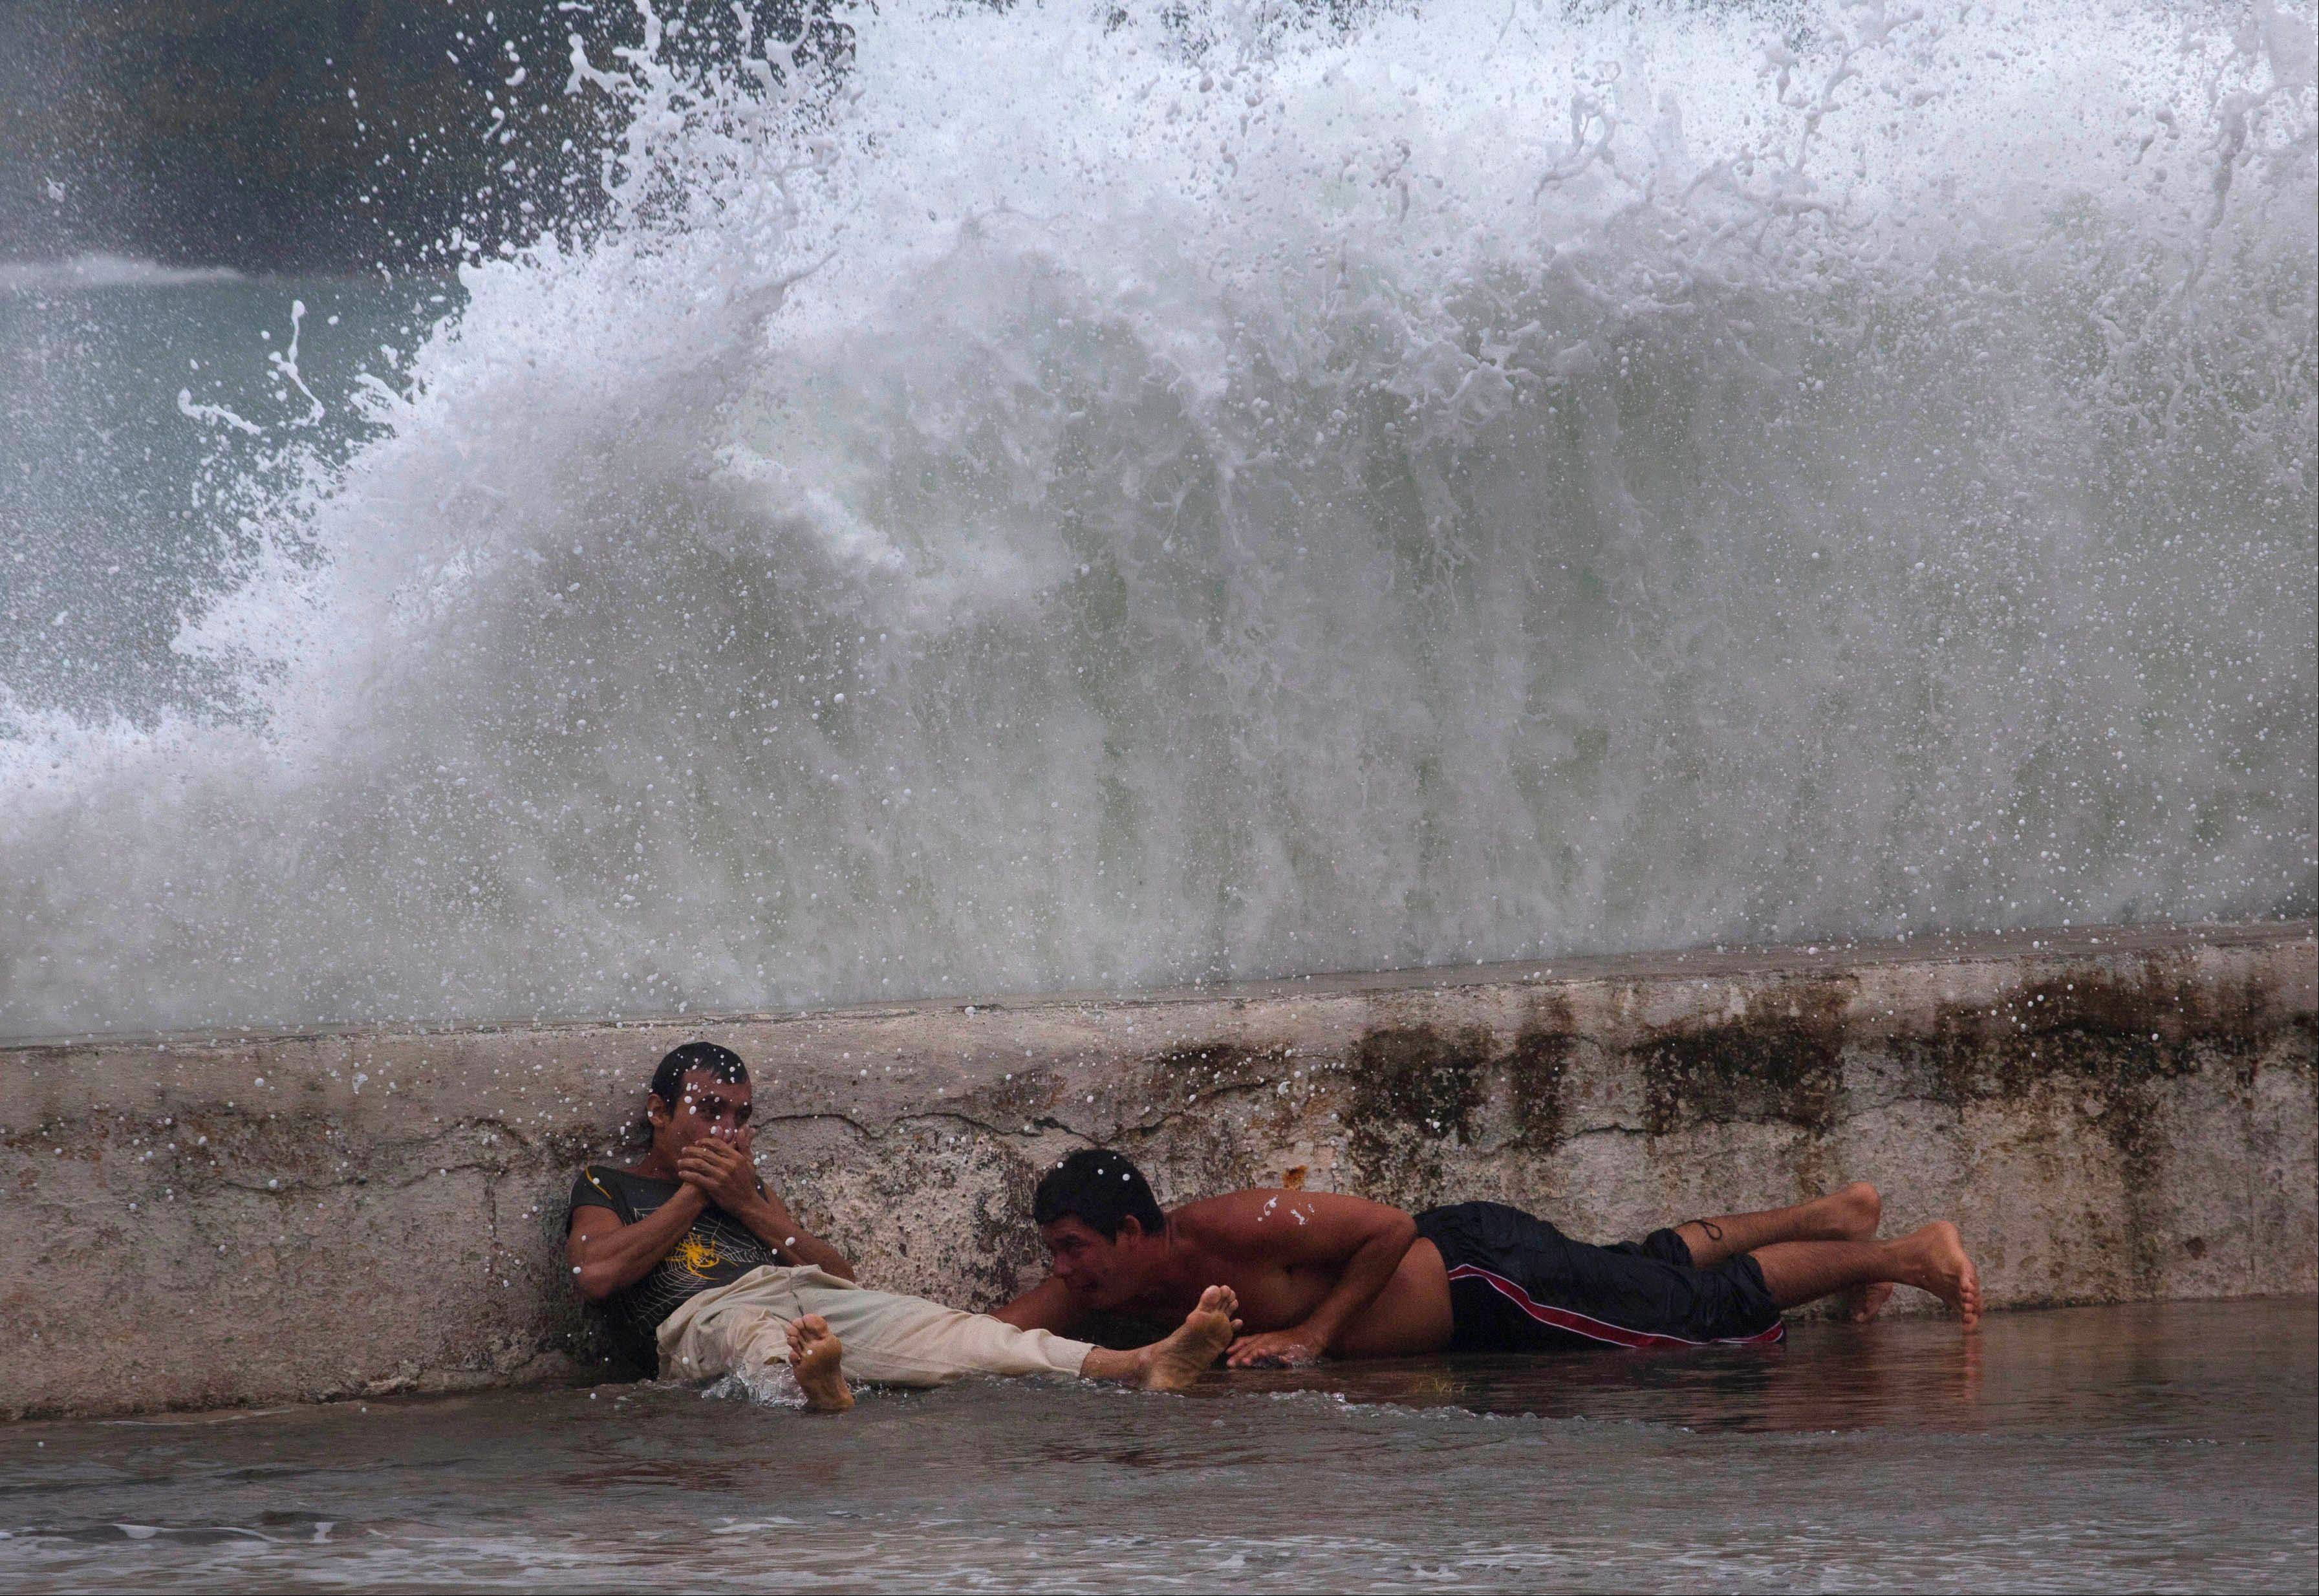 Men lay behind the seawall as waves brought by Tropical Storm Isaac splash over them in Baracoa, Cuba, Saturday.